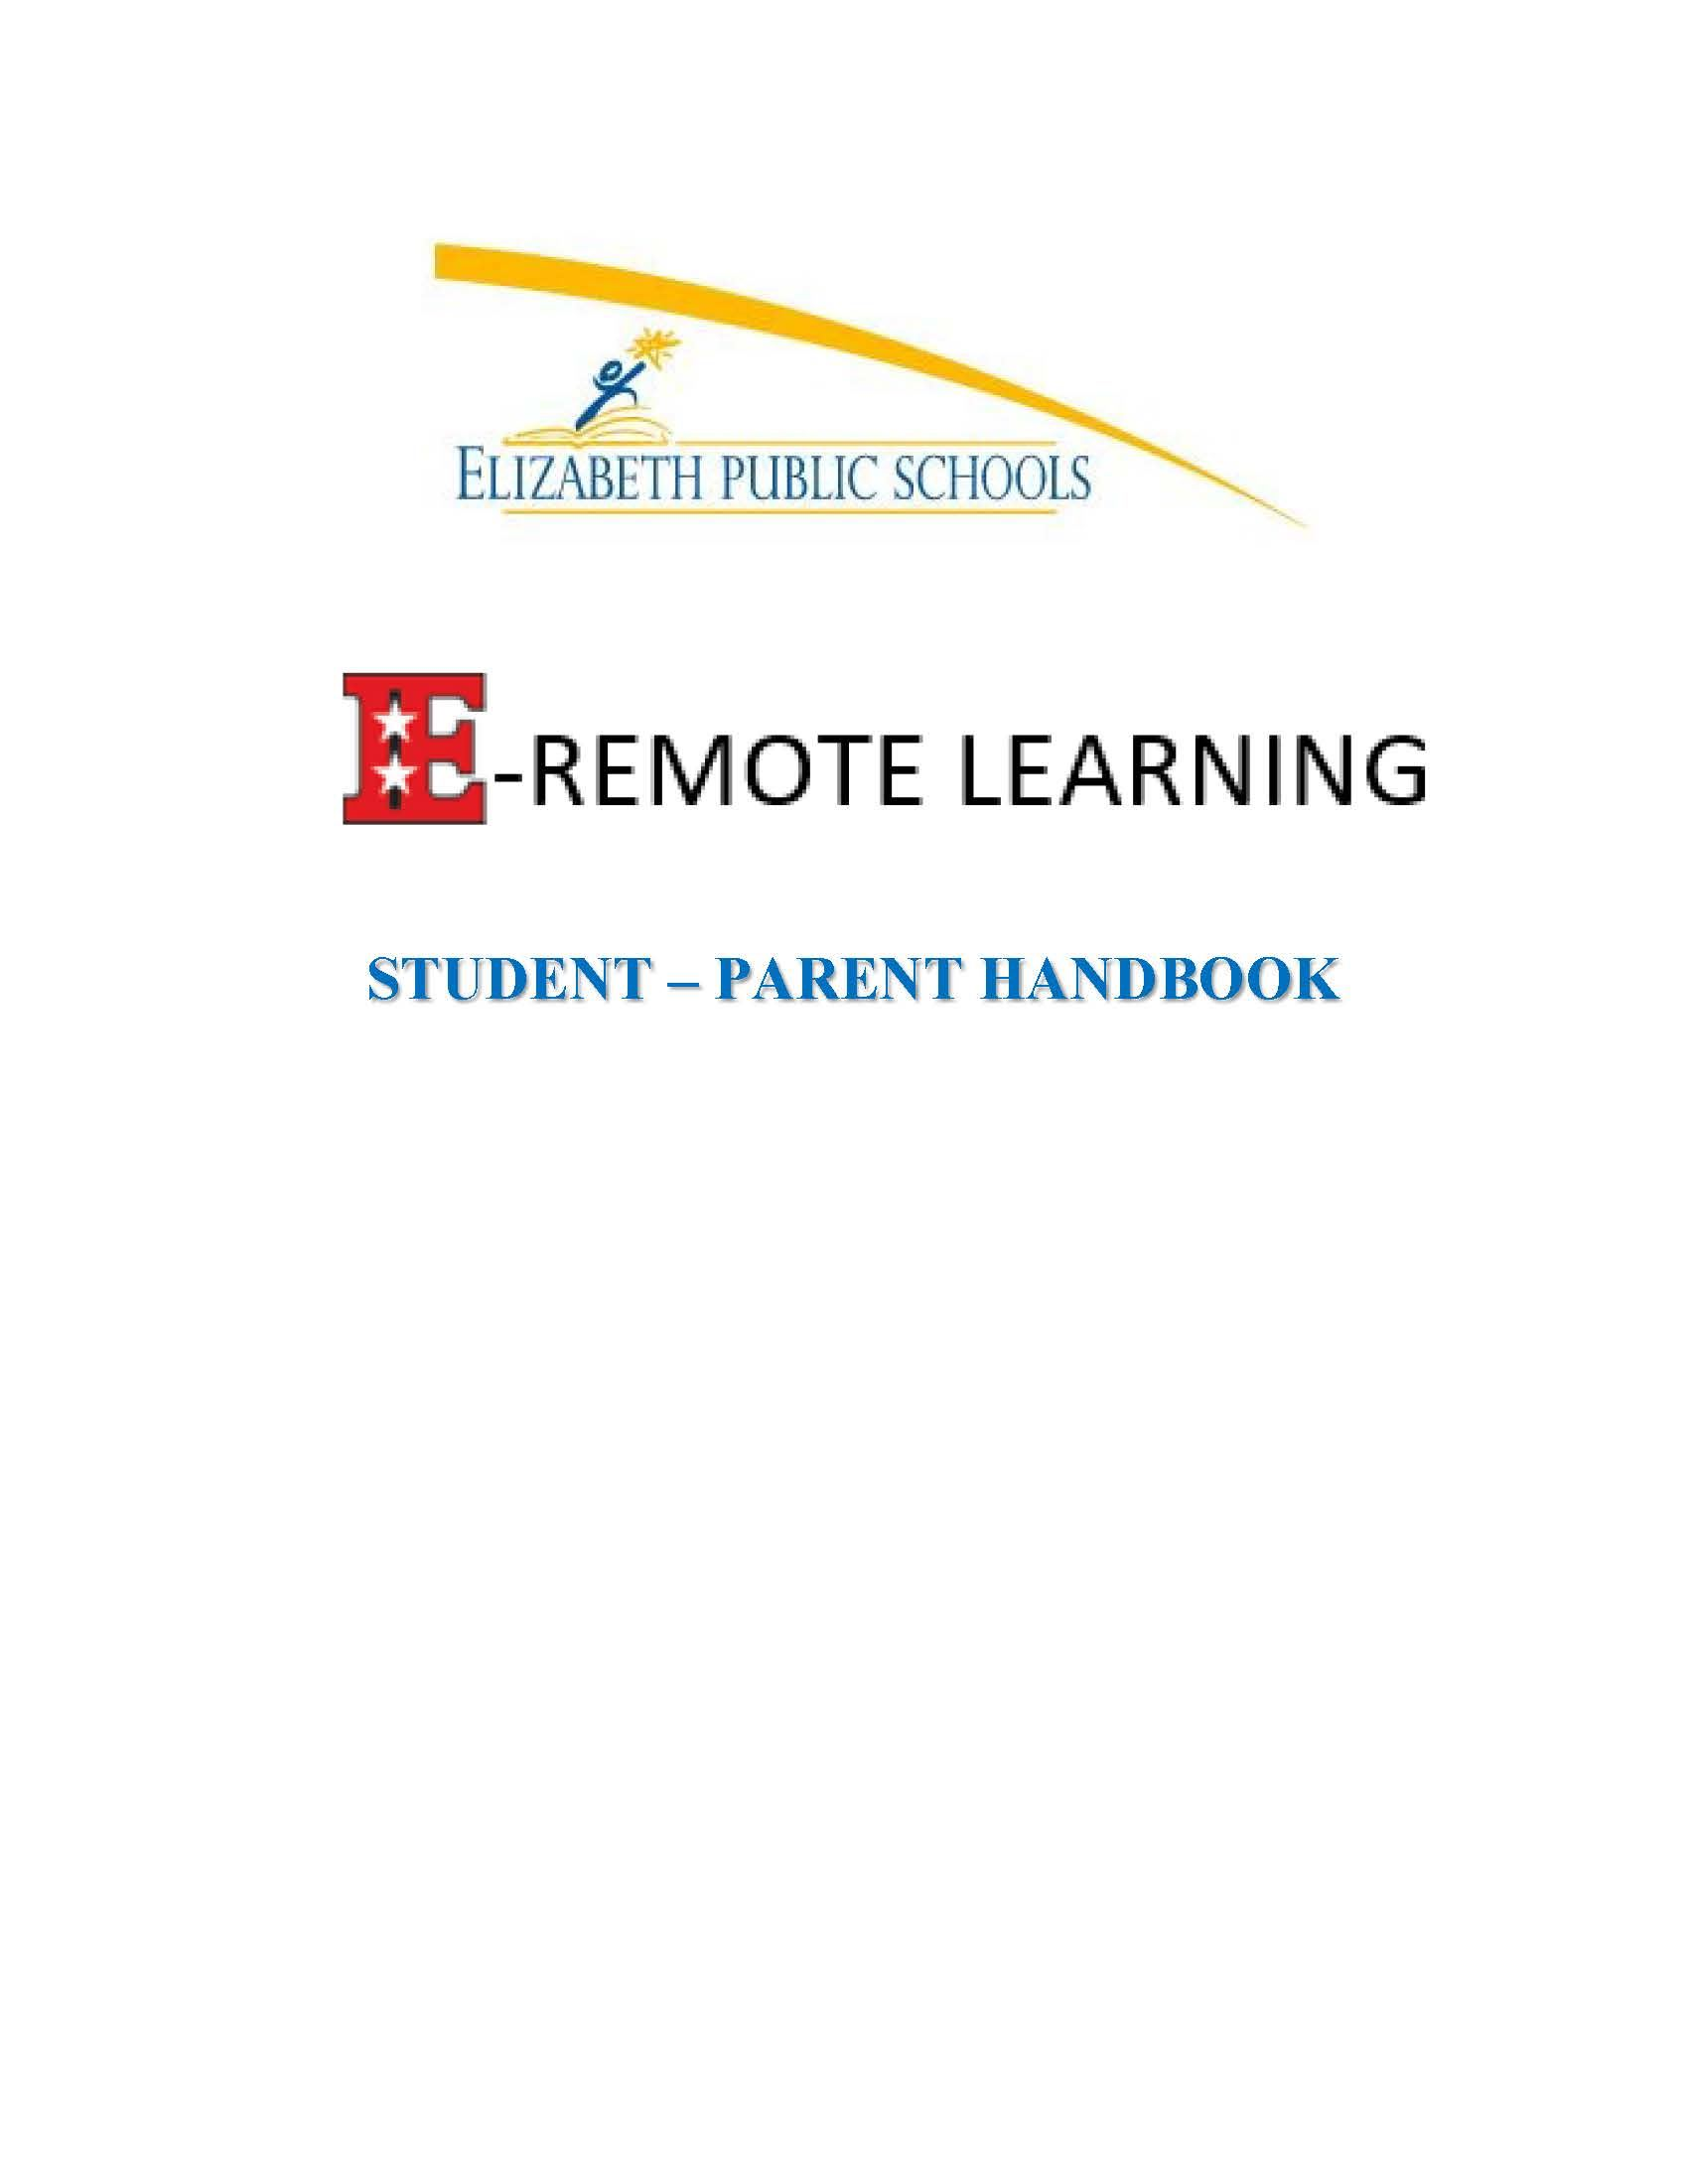 E-Remote Learning – Student Parent Handbook